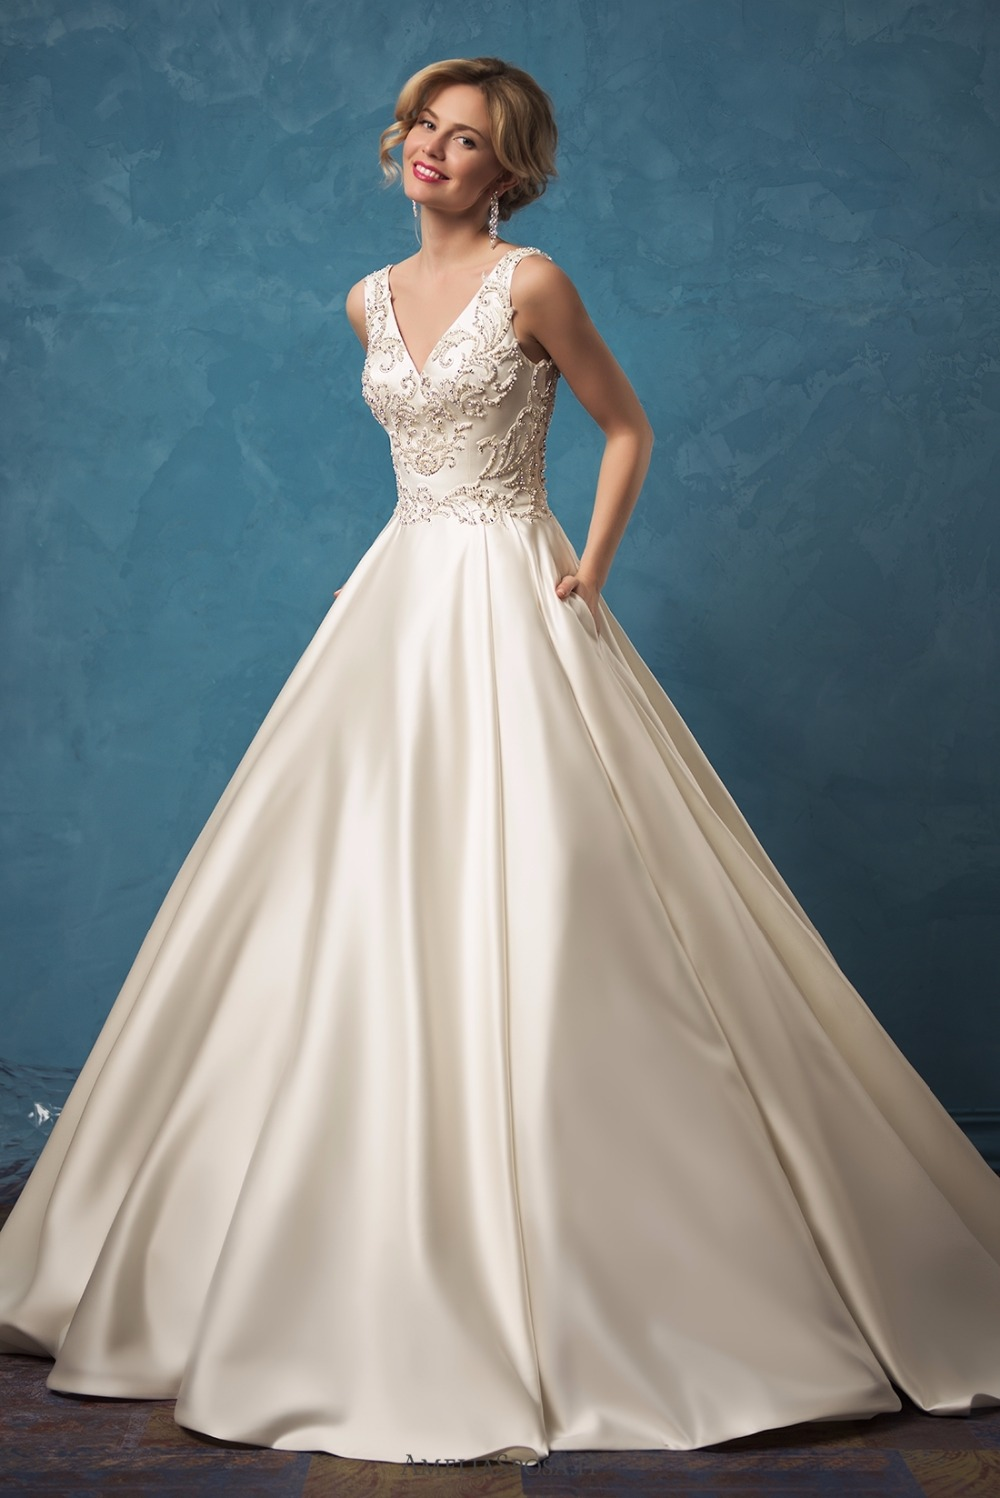 Fancy Wedding Gowns Design Picture Collection - All Wedding Dresses ...